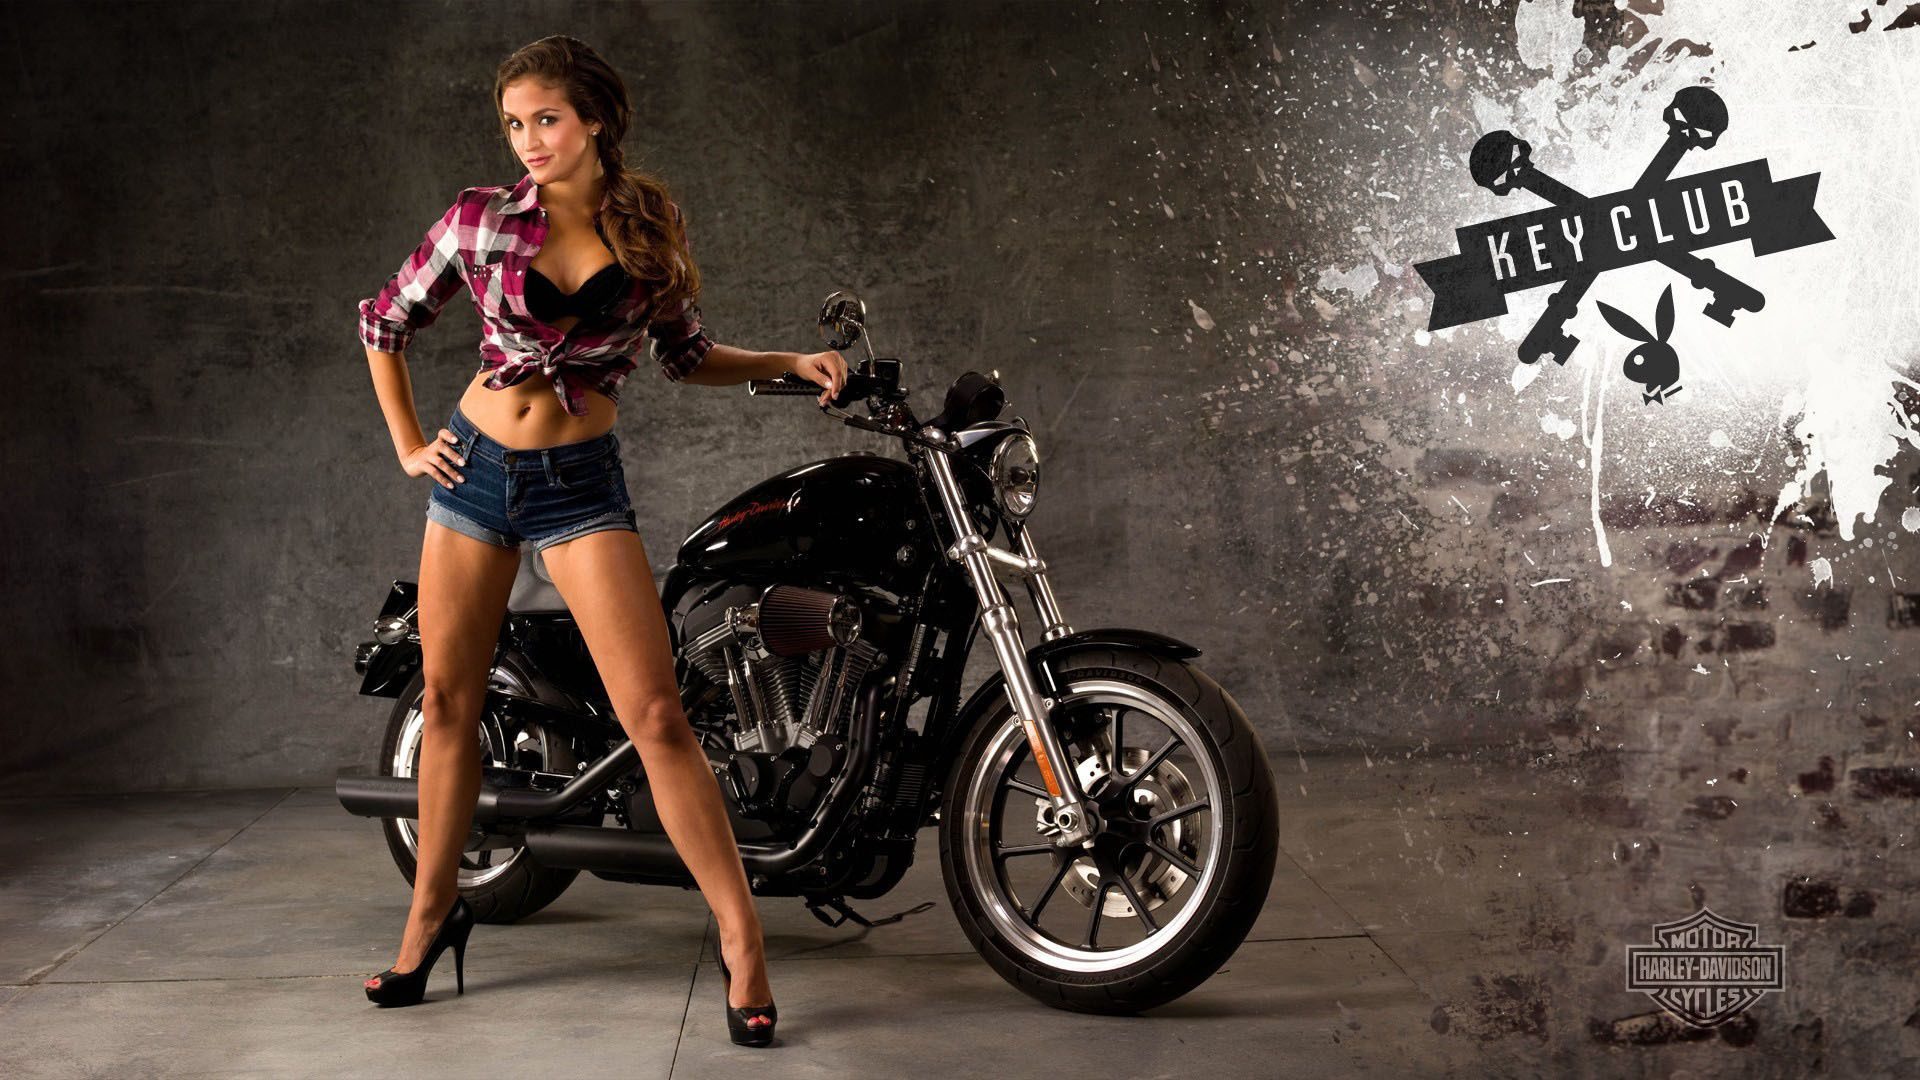 Harley davidson Moto motorcycle girl. Android wallpapers